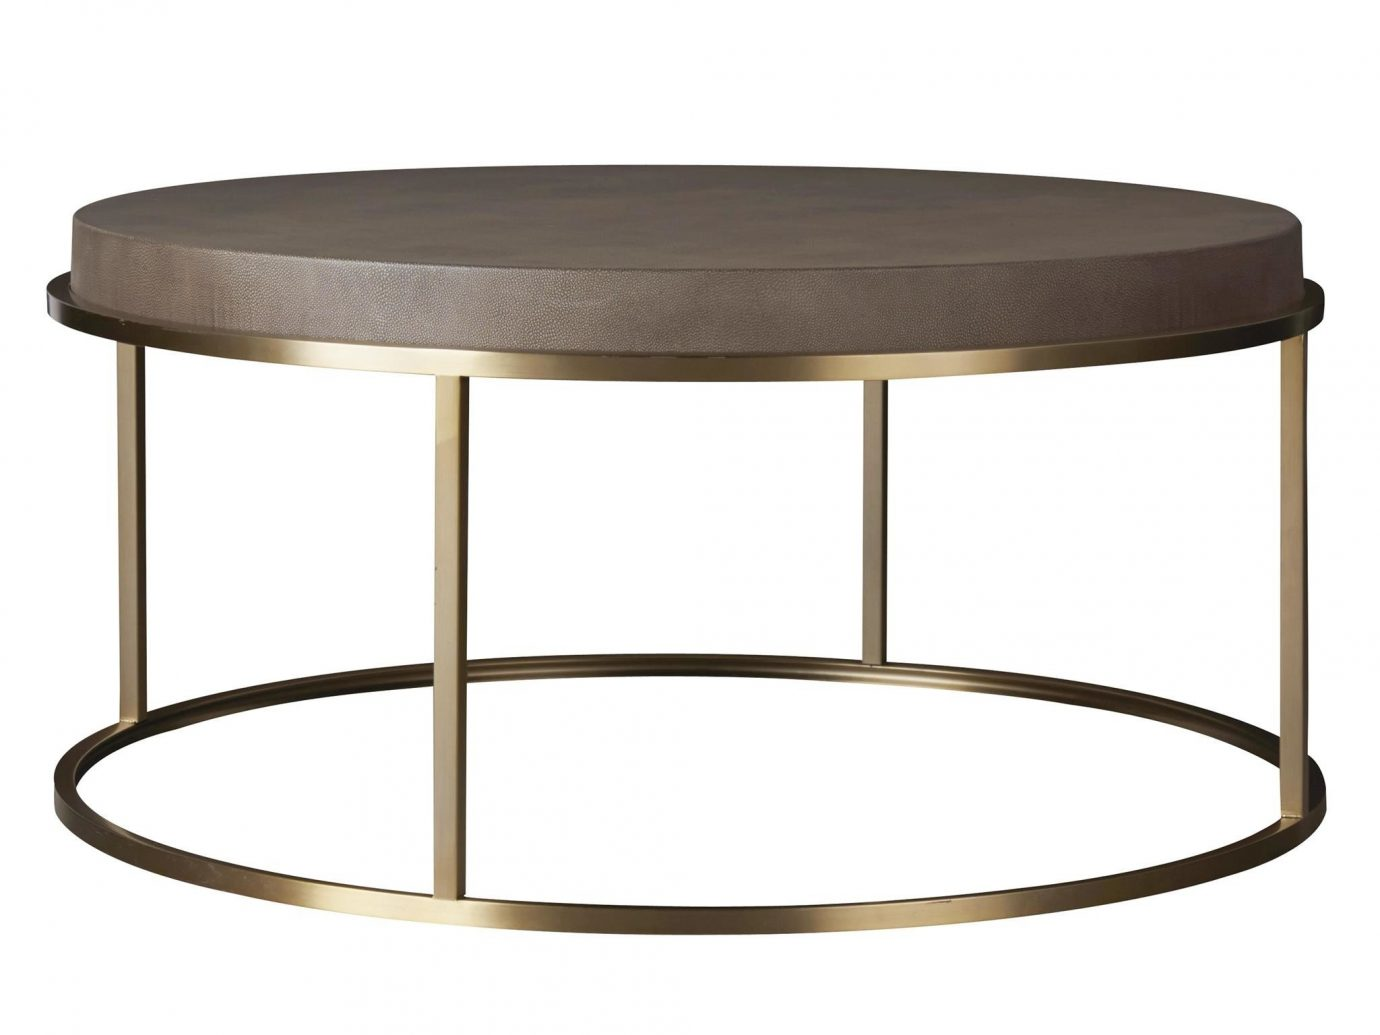 Amsterdam Style + Design The Netherlands Travel Shop furniture table end table product design seat outdoor table coffee table product console table